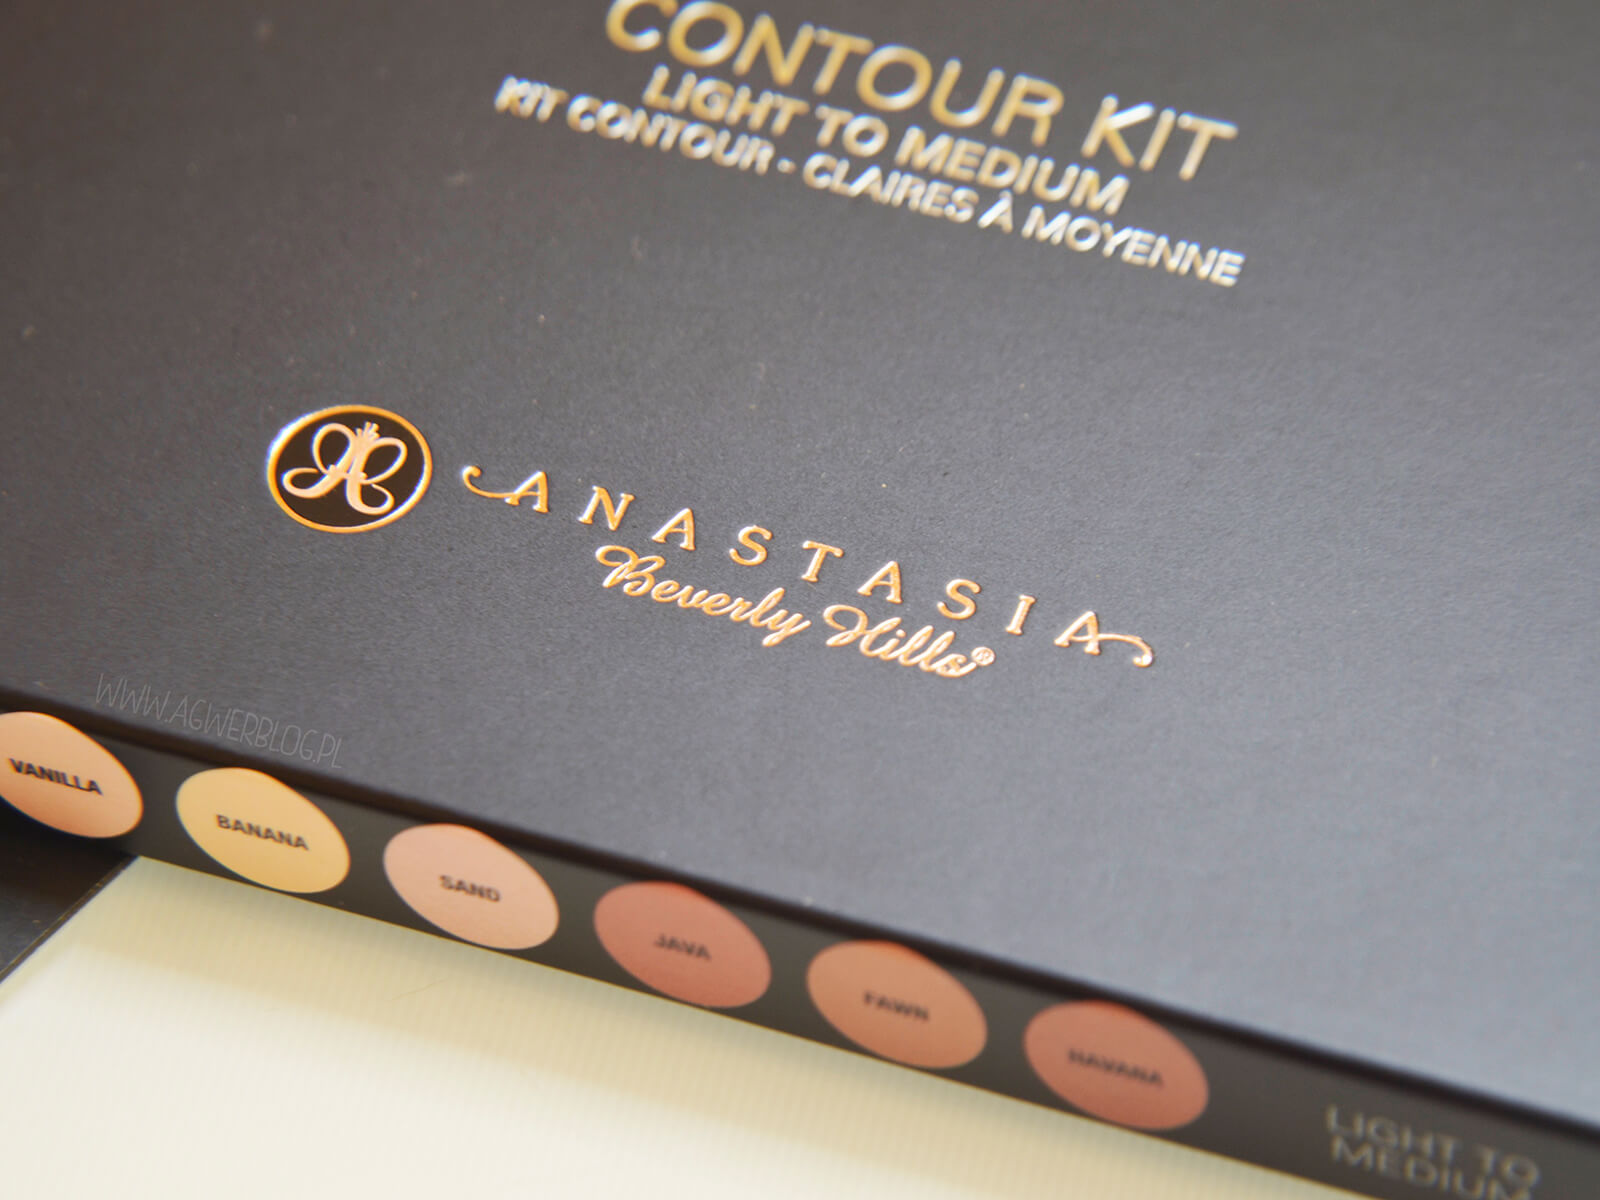 Anastasia Beverly Hills Contour kit blog